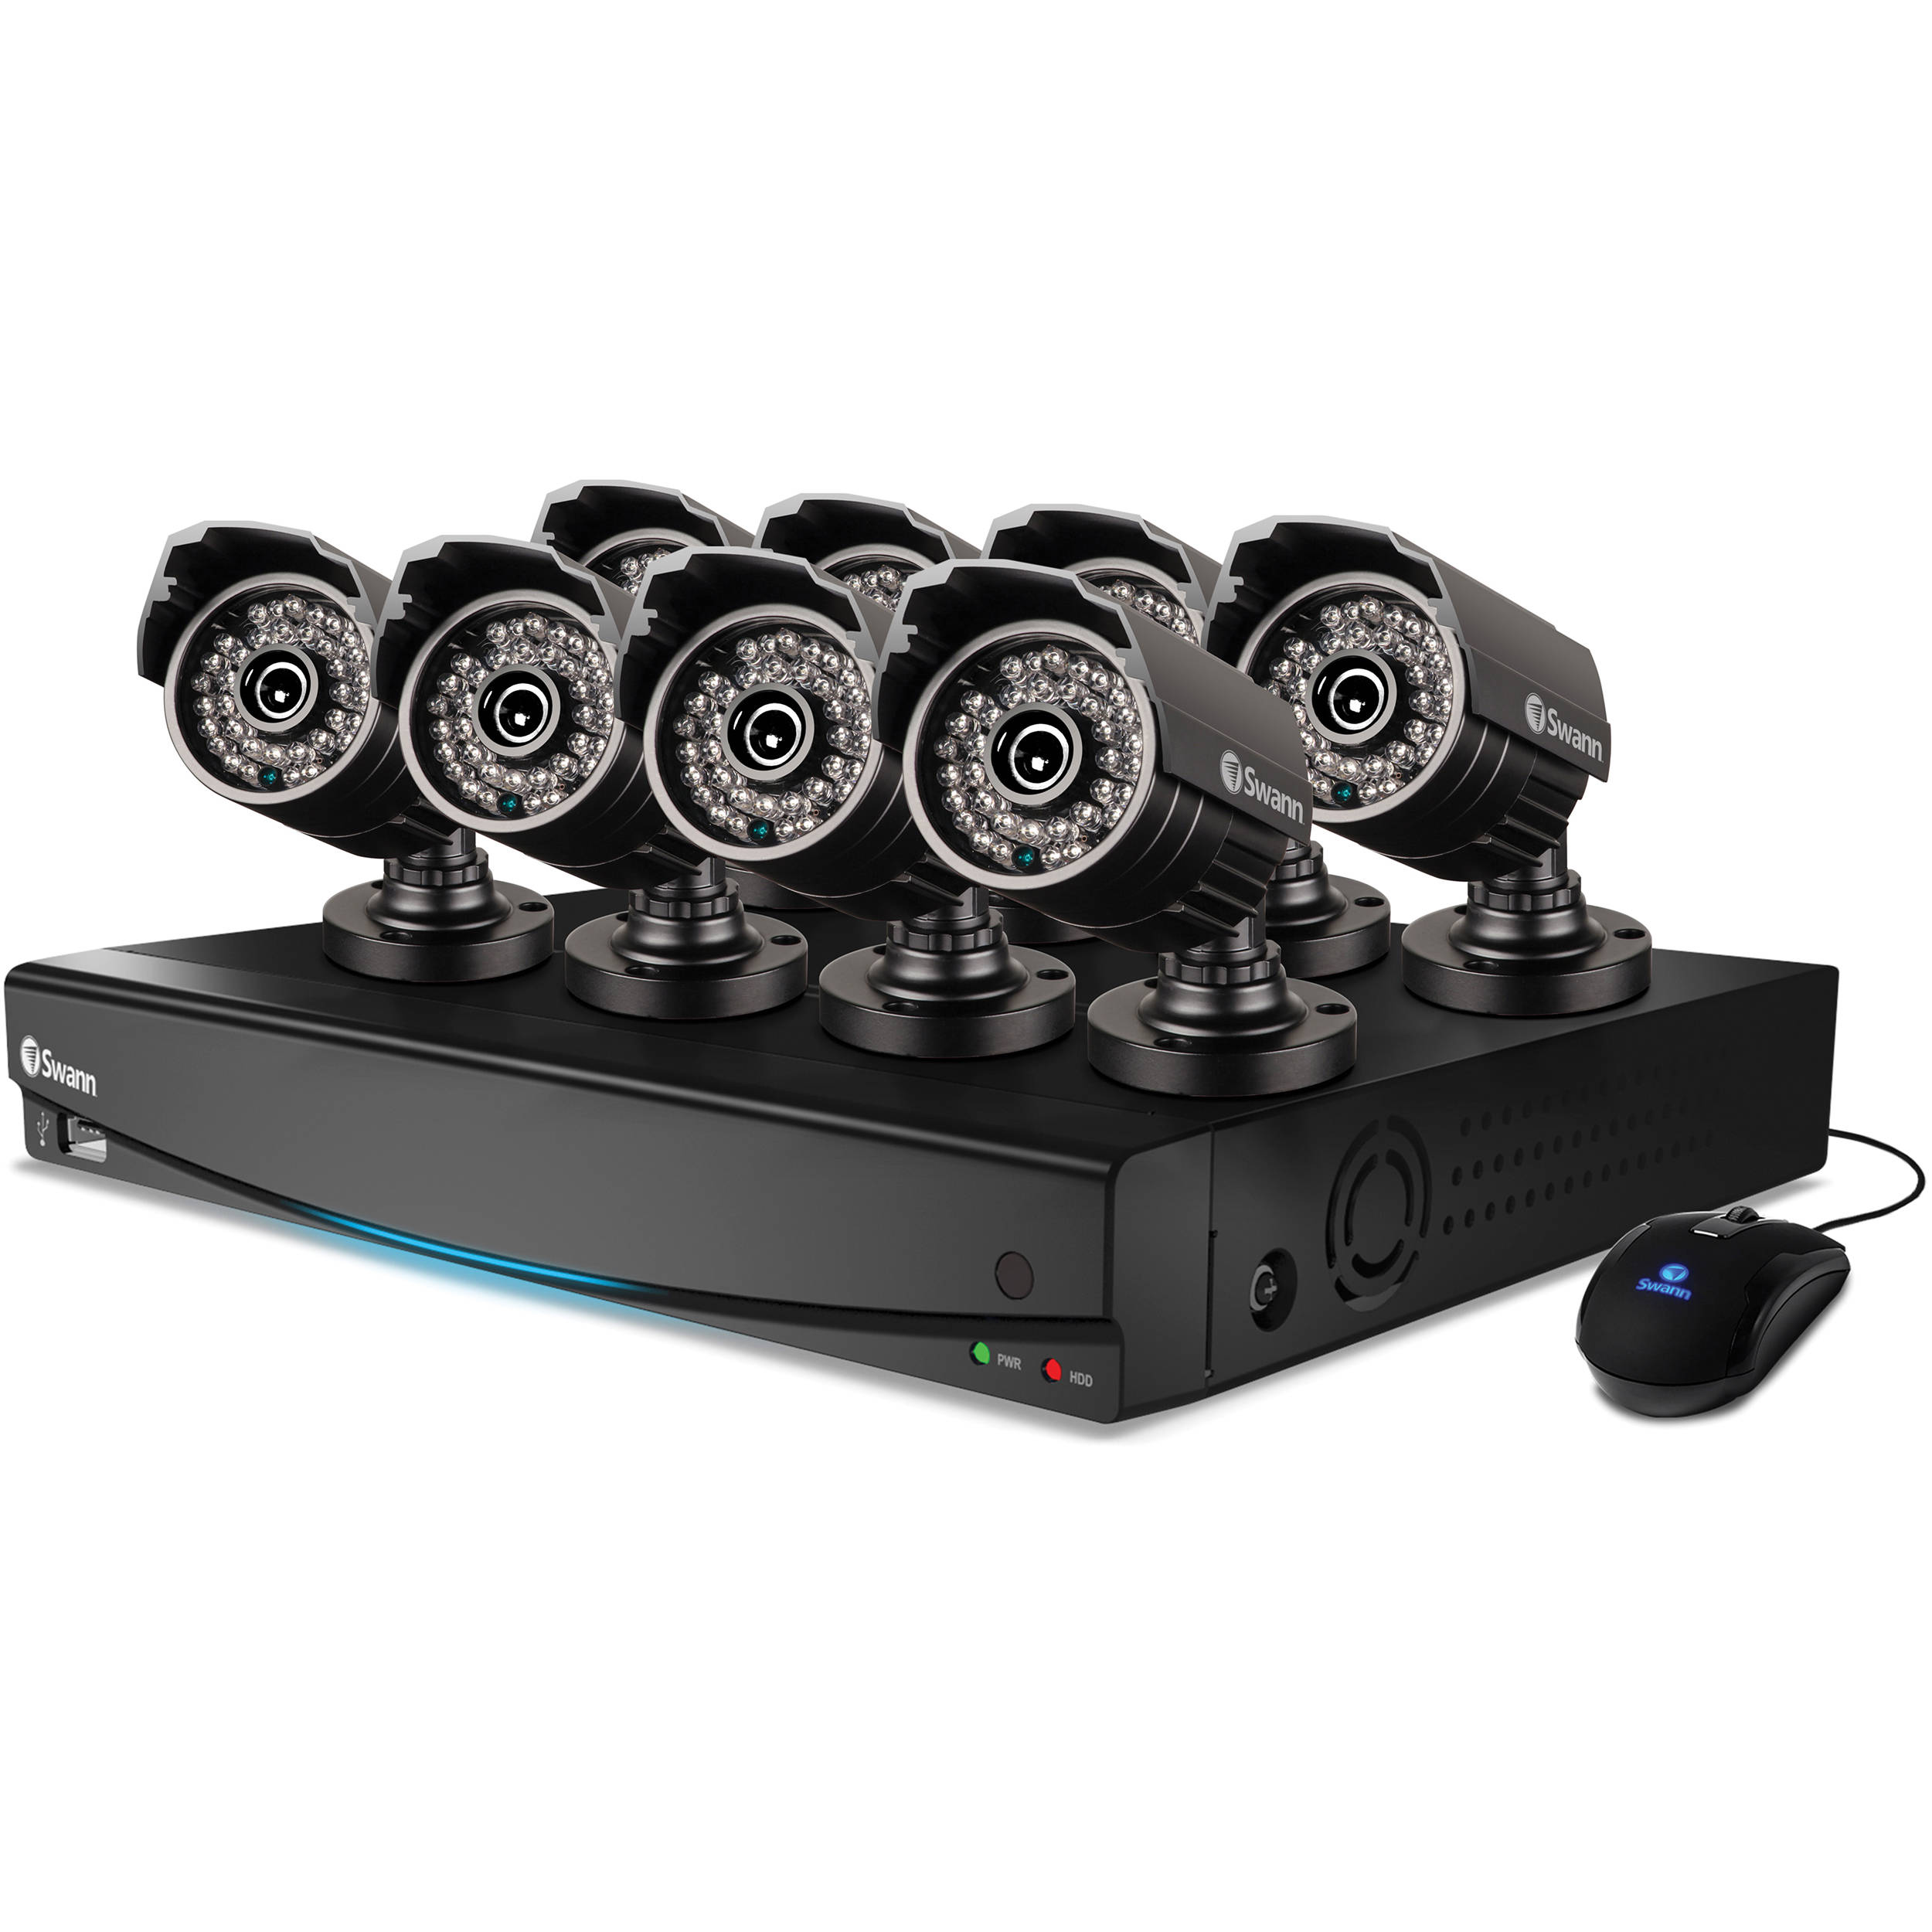 Swann DVR8-3425 8-Channel 960H DVR with 1TB HDD SWDVK-834258S-US